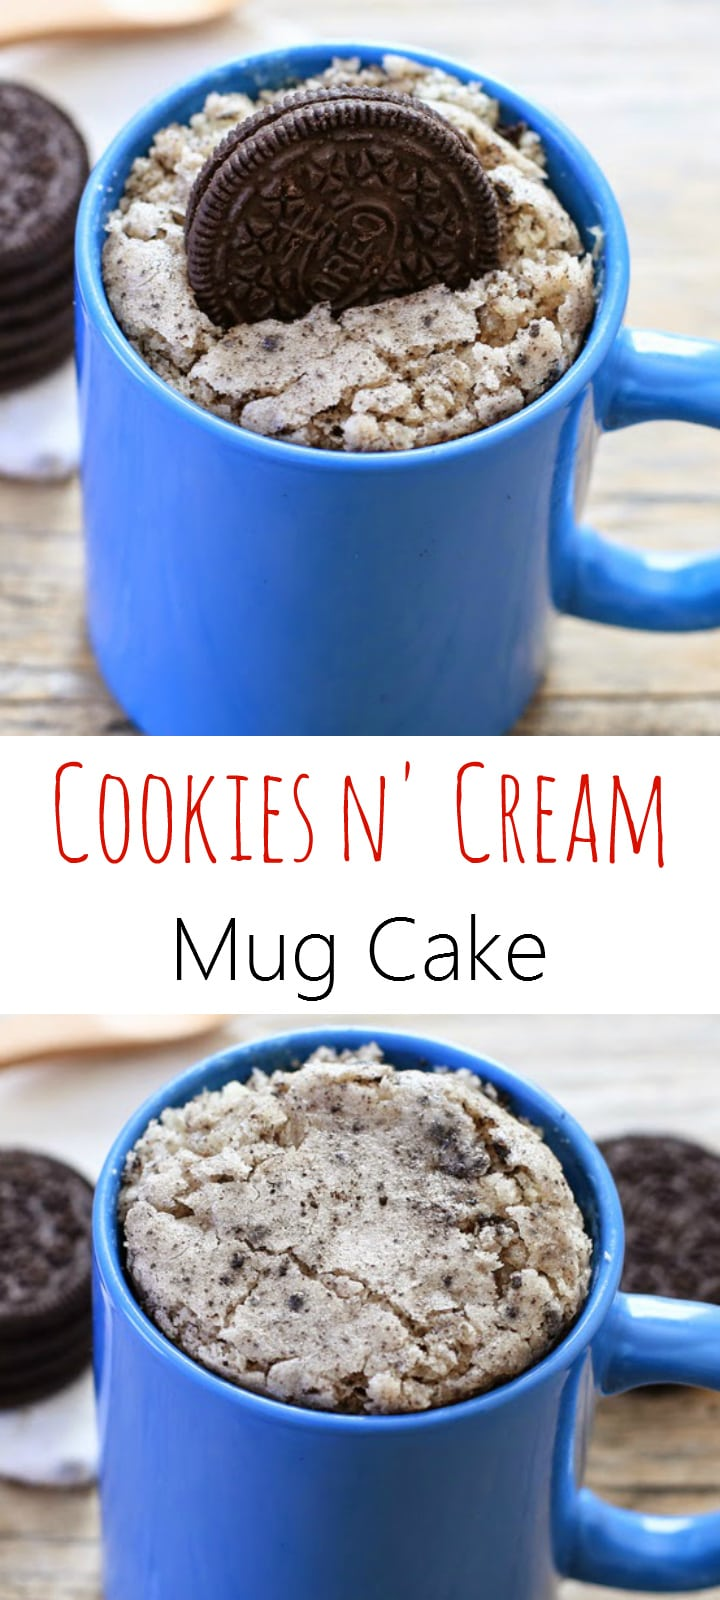 Cookies and Cream Oreo Mug Cake. Single serving cake that cooks in the microwave.